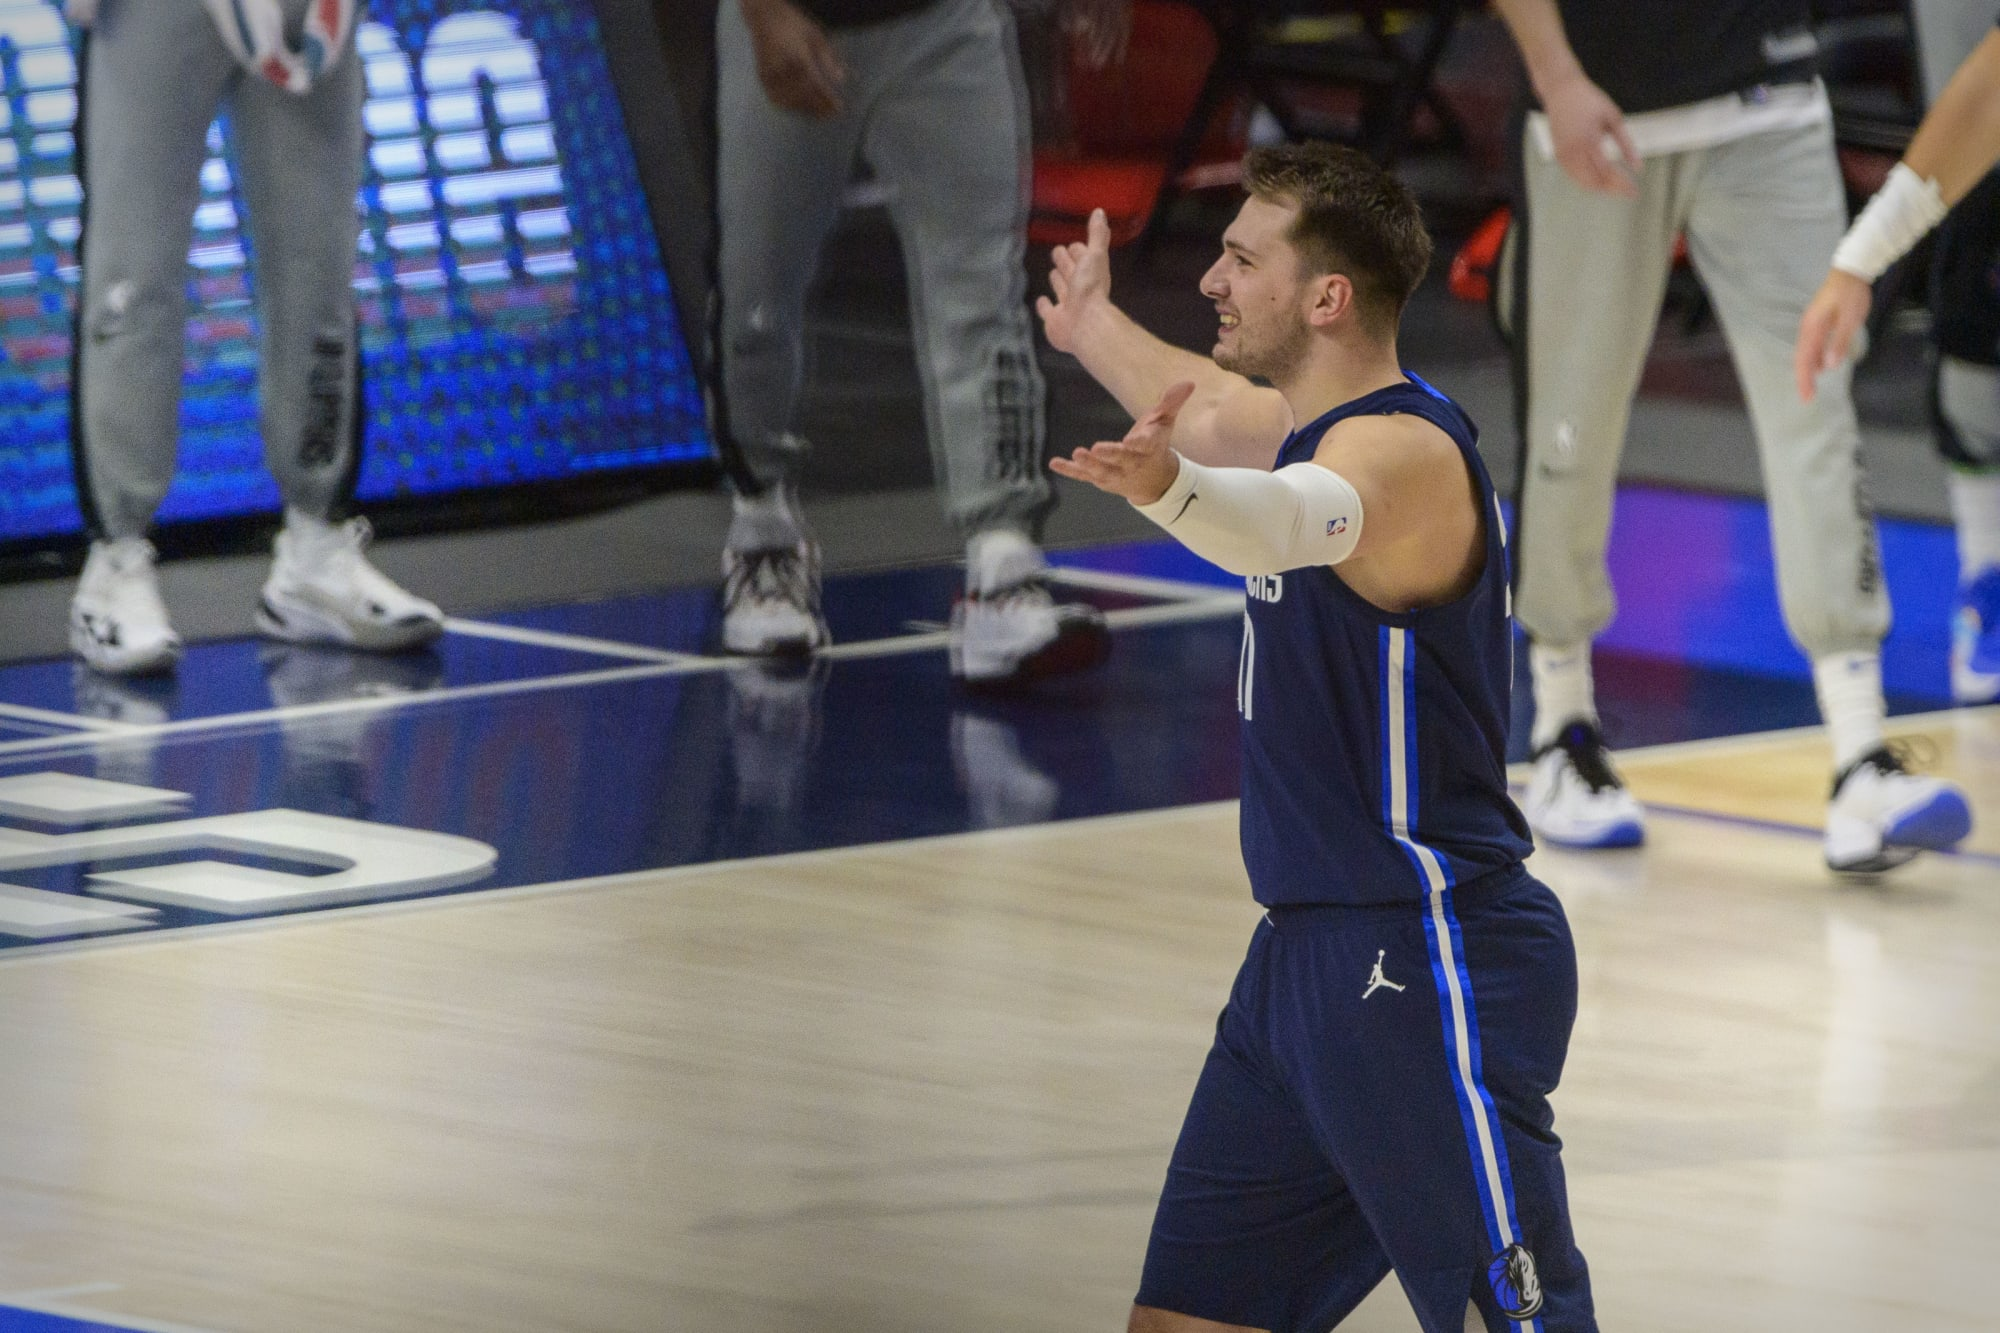 NBA <b>Twitter</b> erupts after Luka Doncic's hot Game 3 start vs. Clippers thumbnail